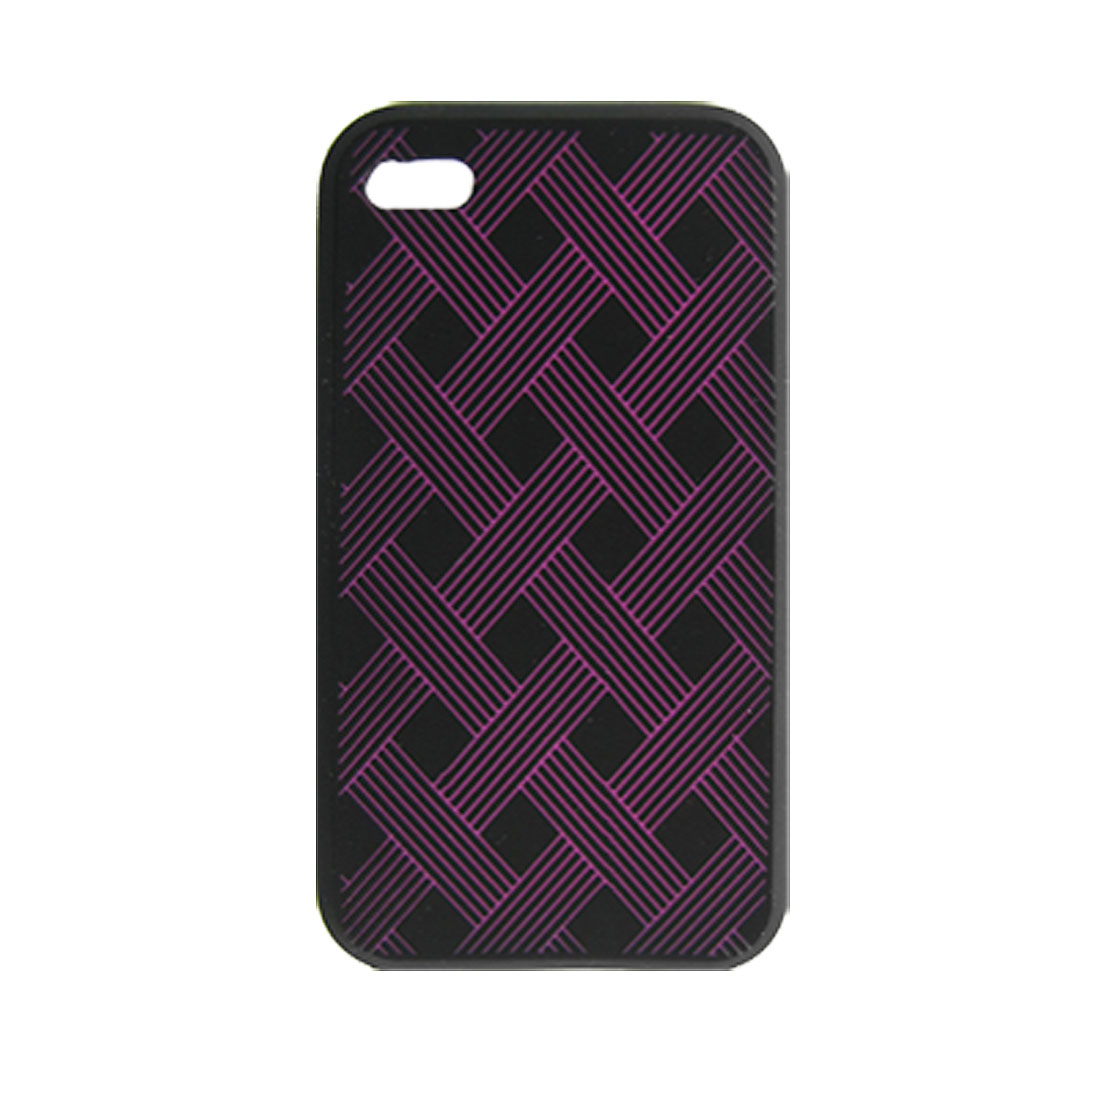 Plait Pattern Silicone Skin Case w Screen Guard for iPhone 4 4G